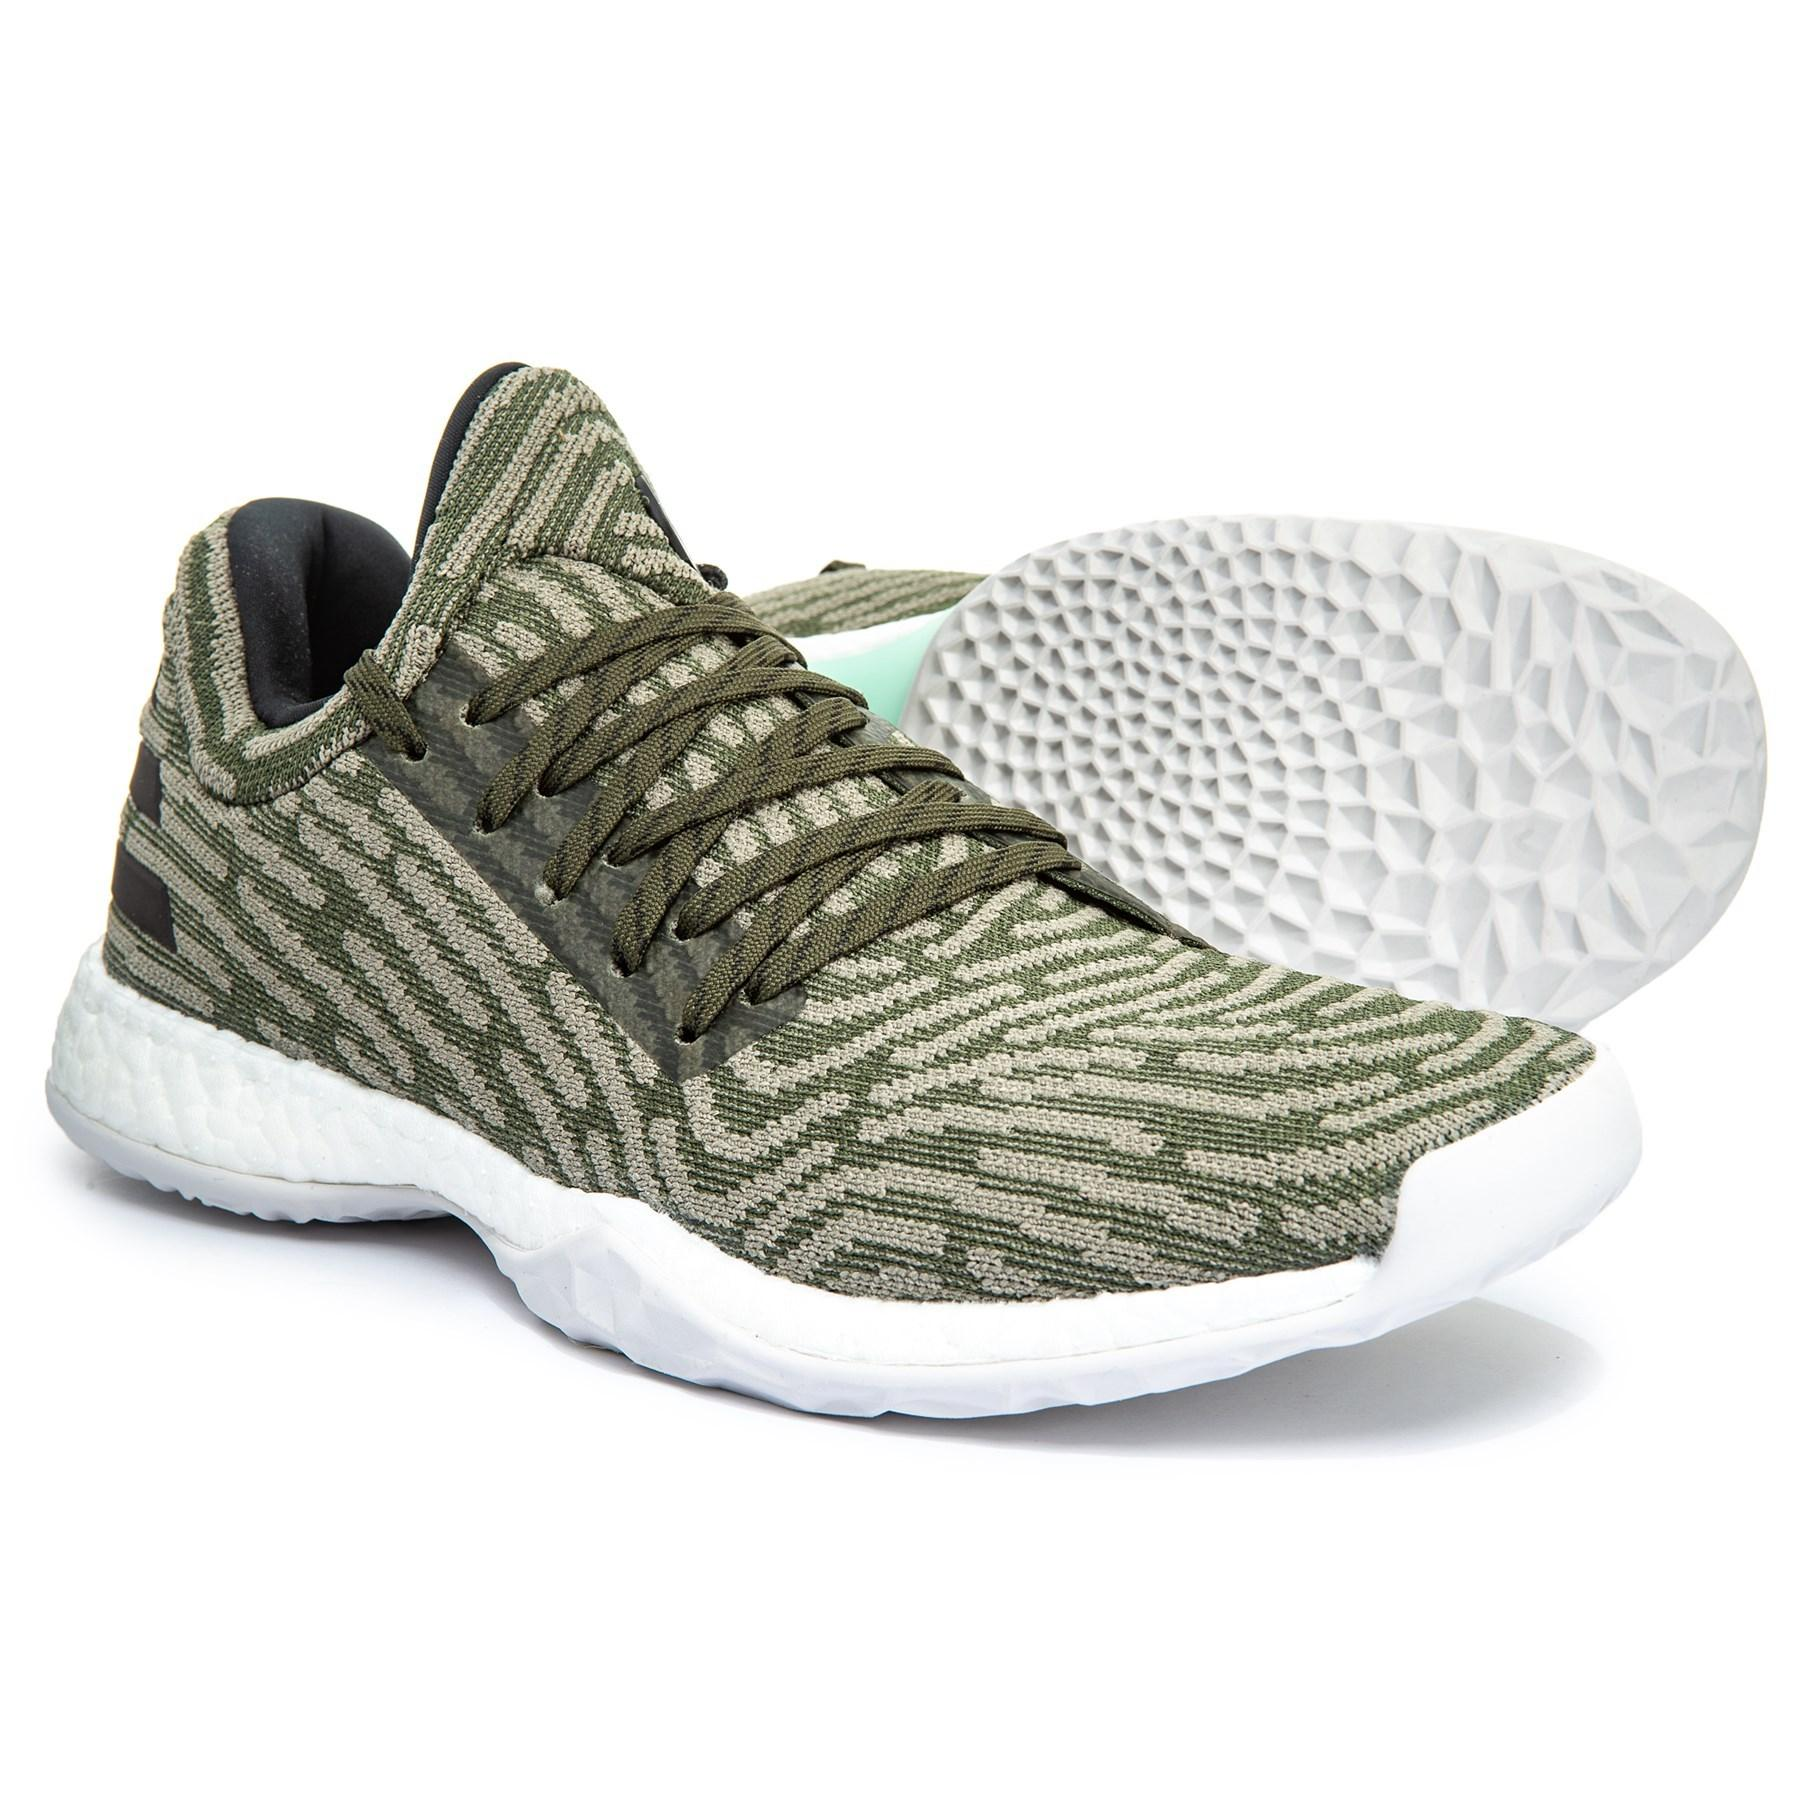 66f0a6d3b3b Lyst - adidas Harden Volume 1 Ls Primeknit Basketball Shoes (for Men ...